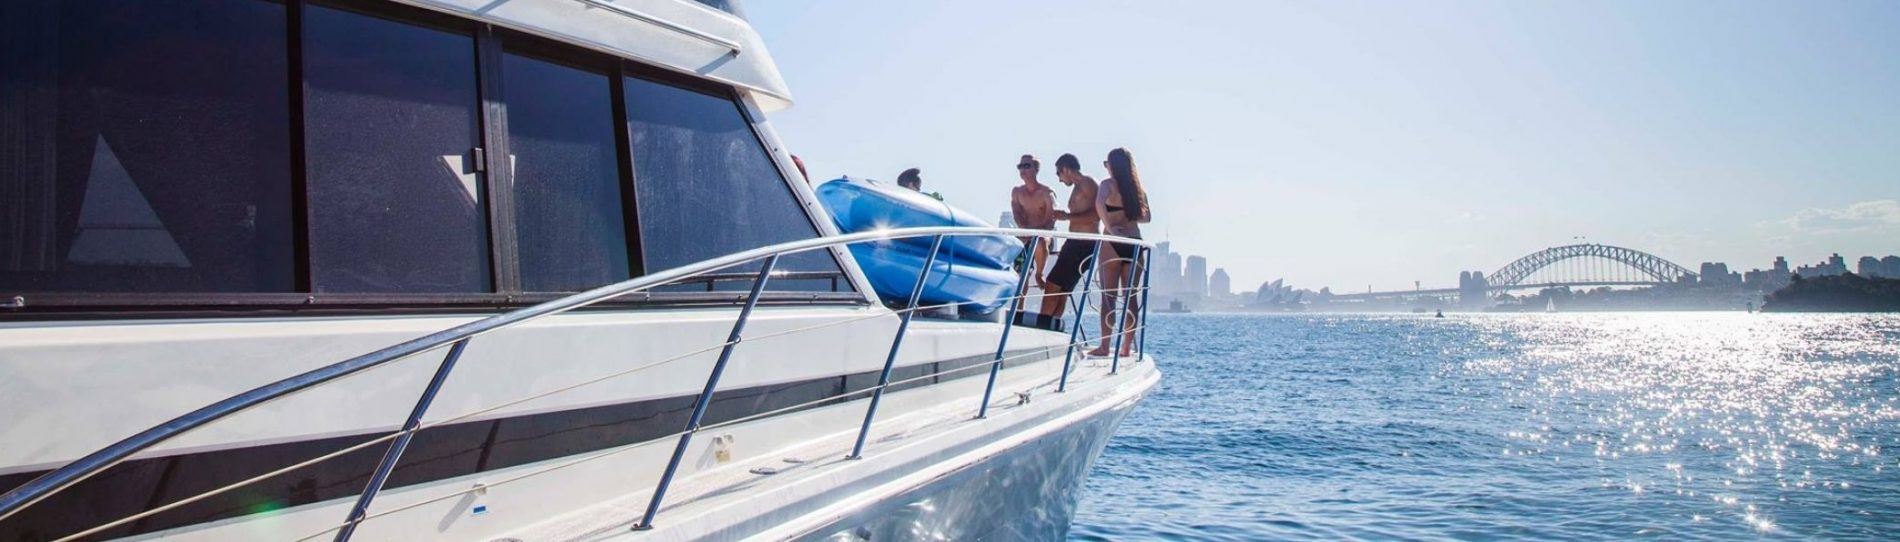 sydney party cruise package header